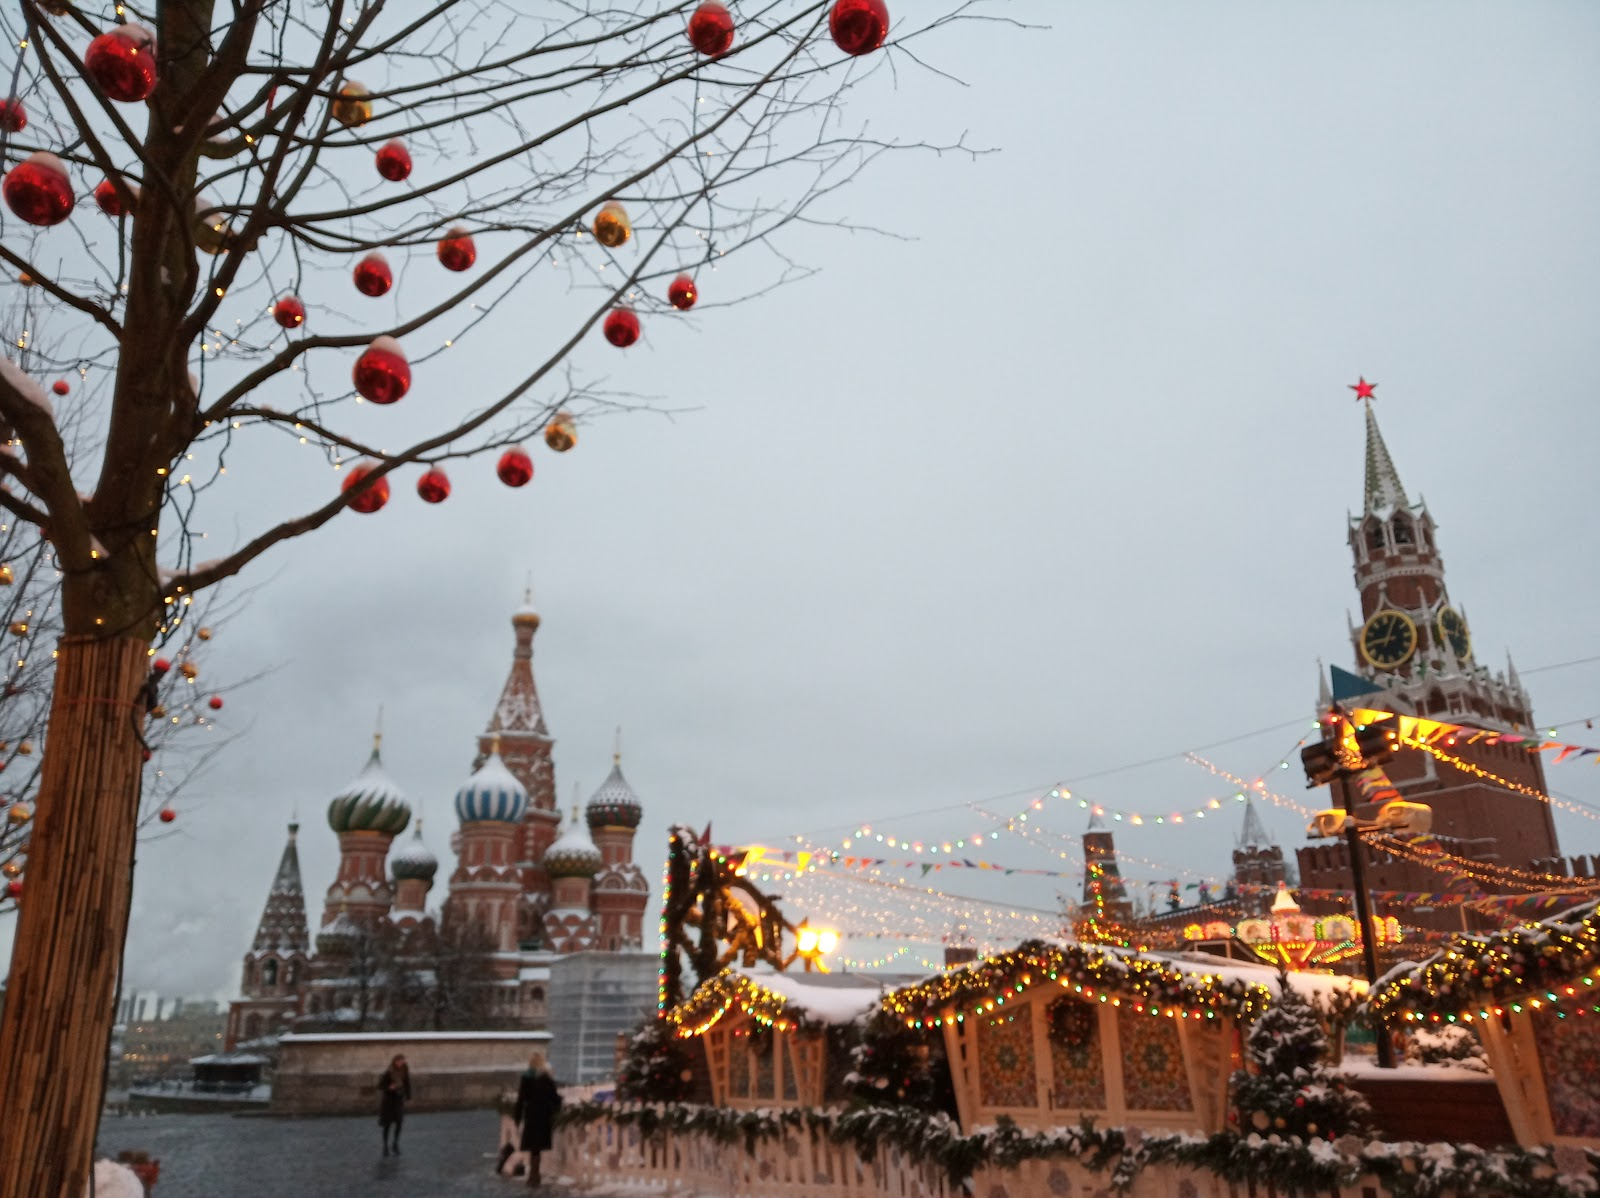 Moscow, the Read Square in winter decorations